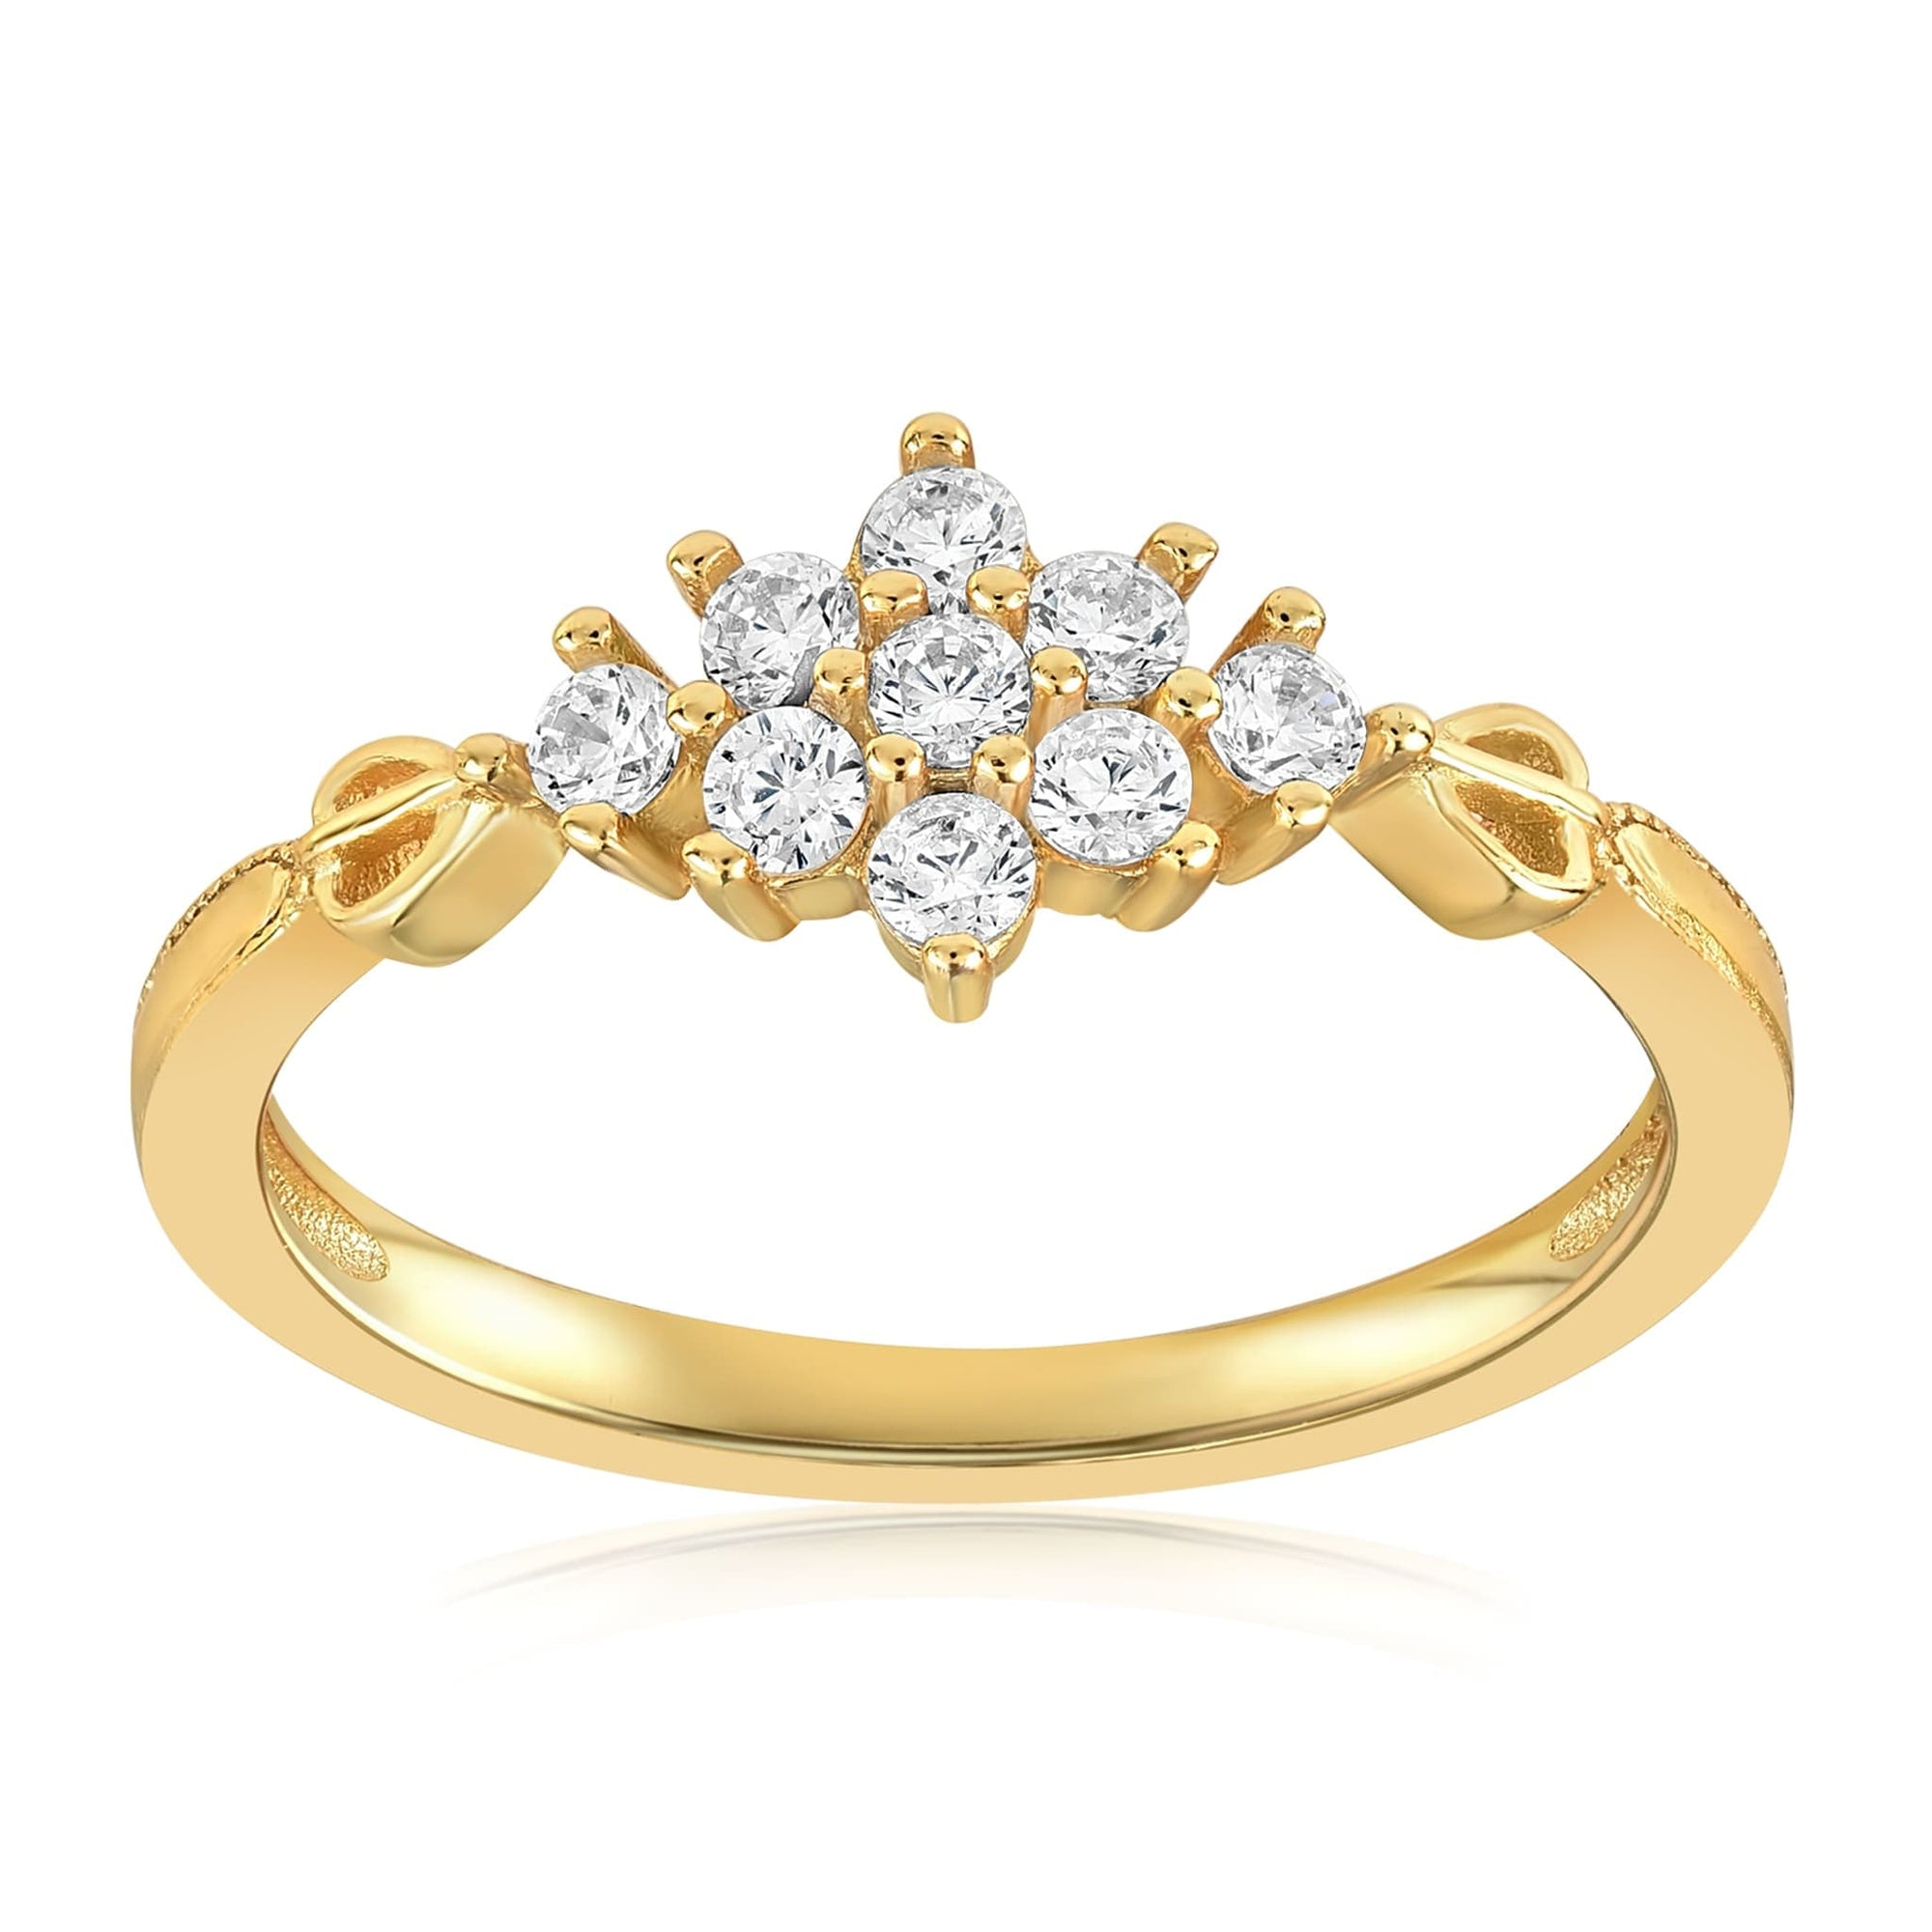 Sarah Snowflake Dainty Ring - Front View Facing Up - 18K Yellow Gold Vermeil Featured